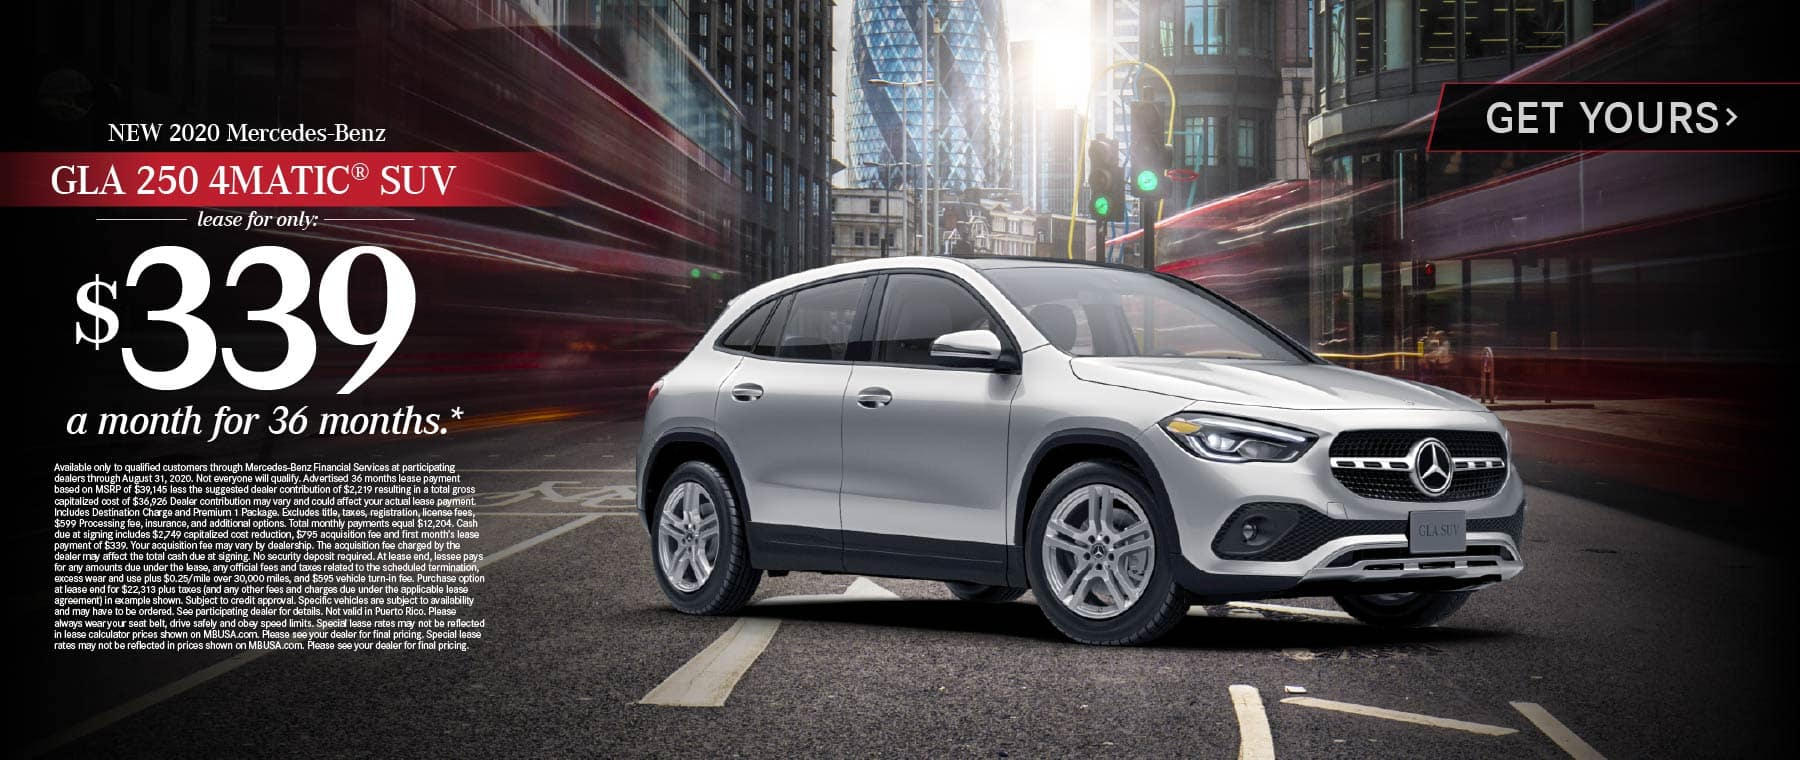 2020 Mercedes Benz GLA 250 4MATIC SUV lease for only: $339 a month for 36 months* Get Yours.